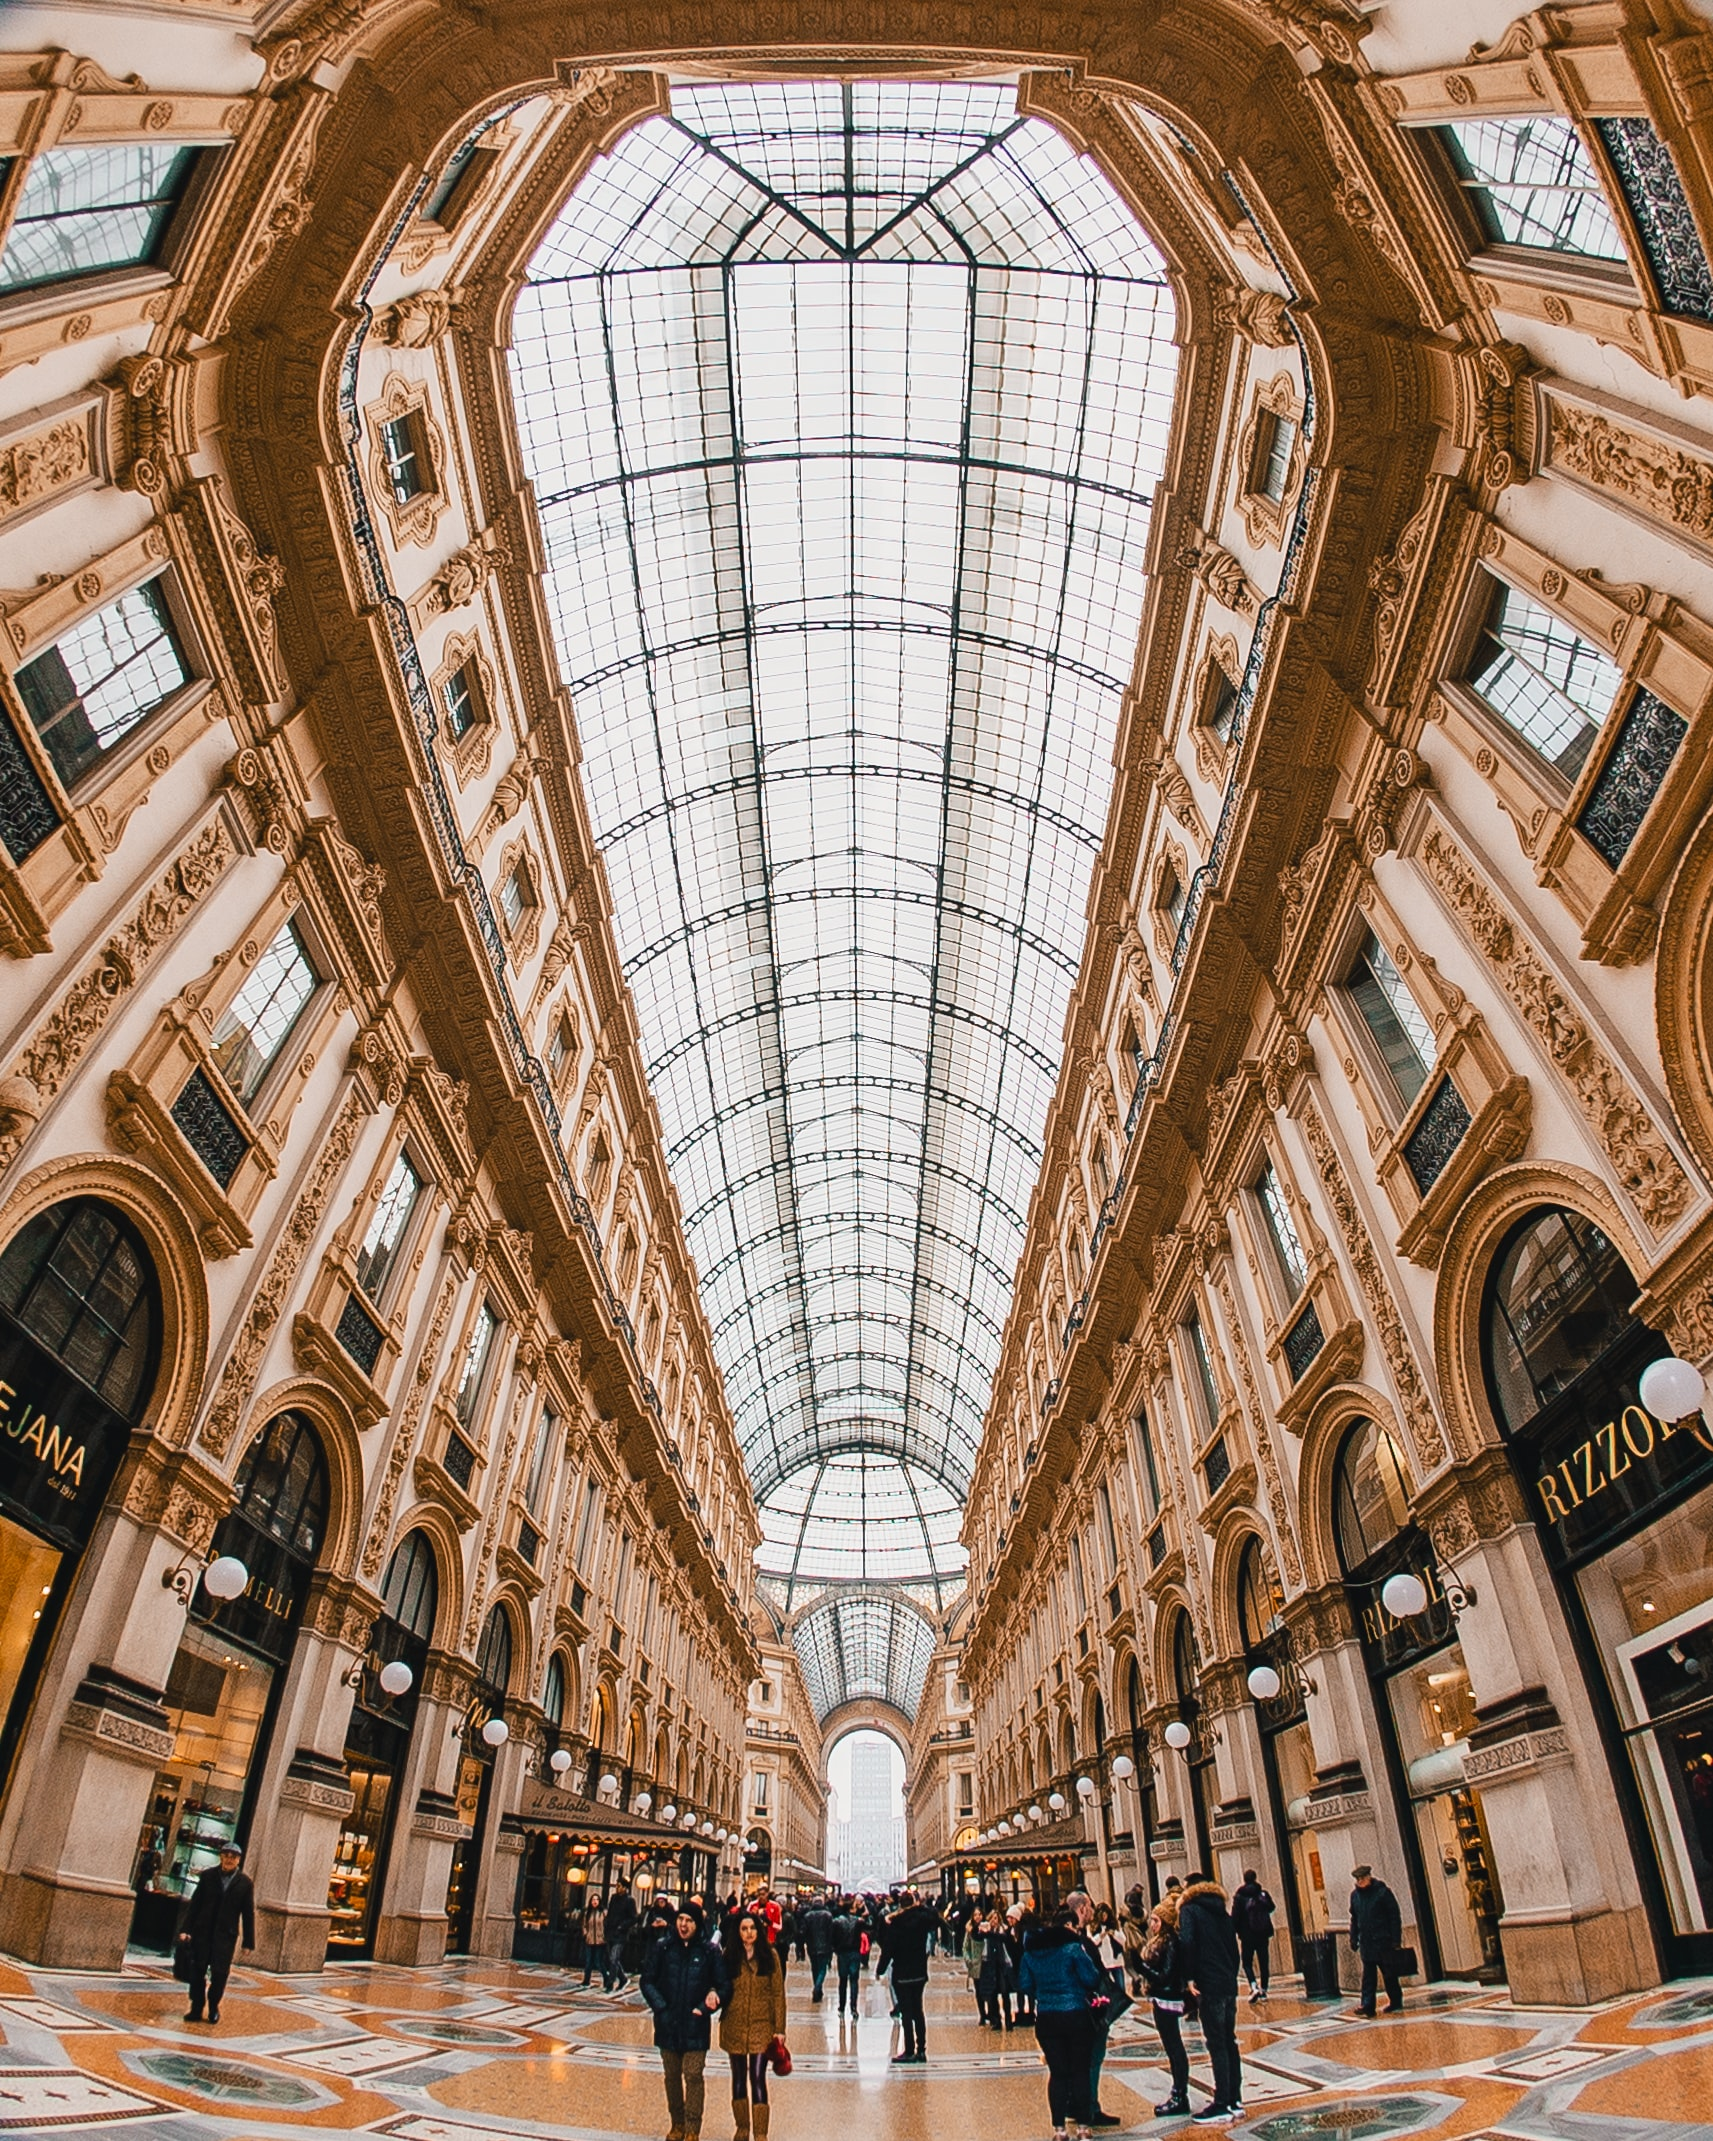 ME Milan: A Look At The World's Fashion Capital